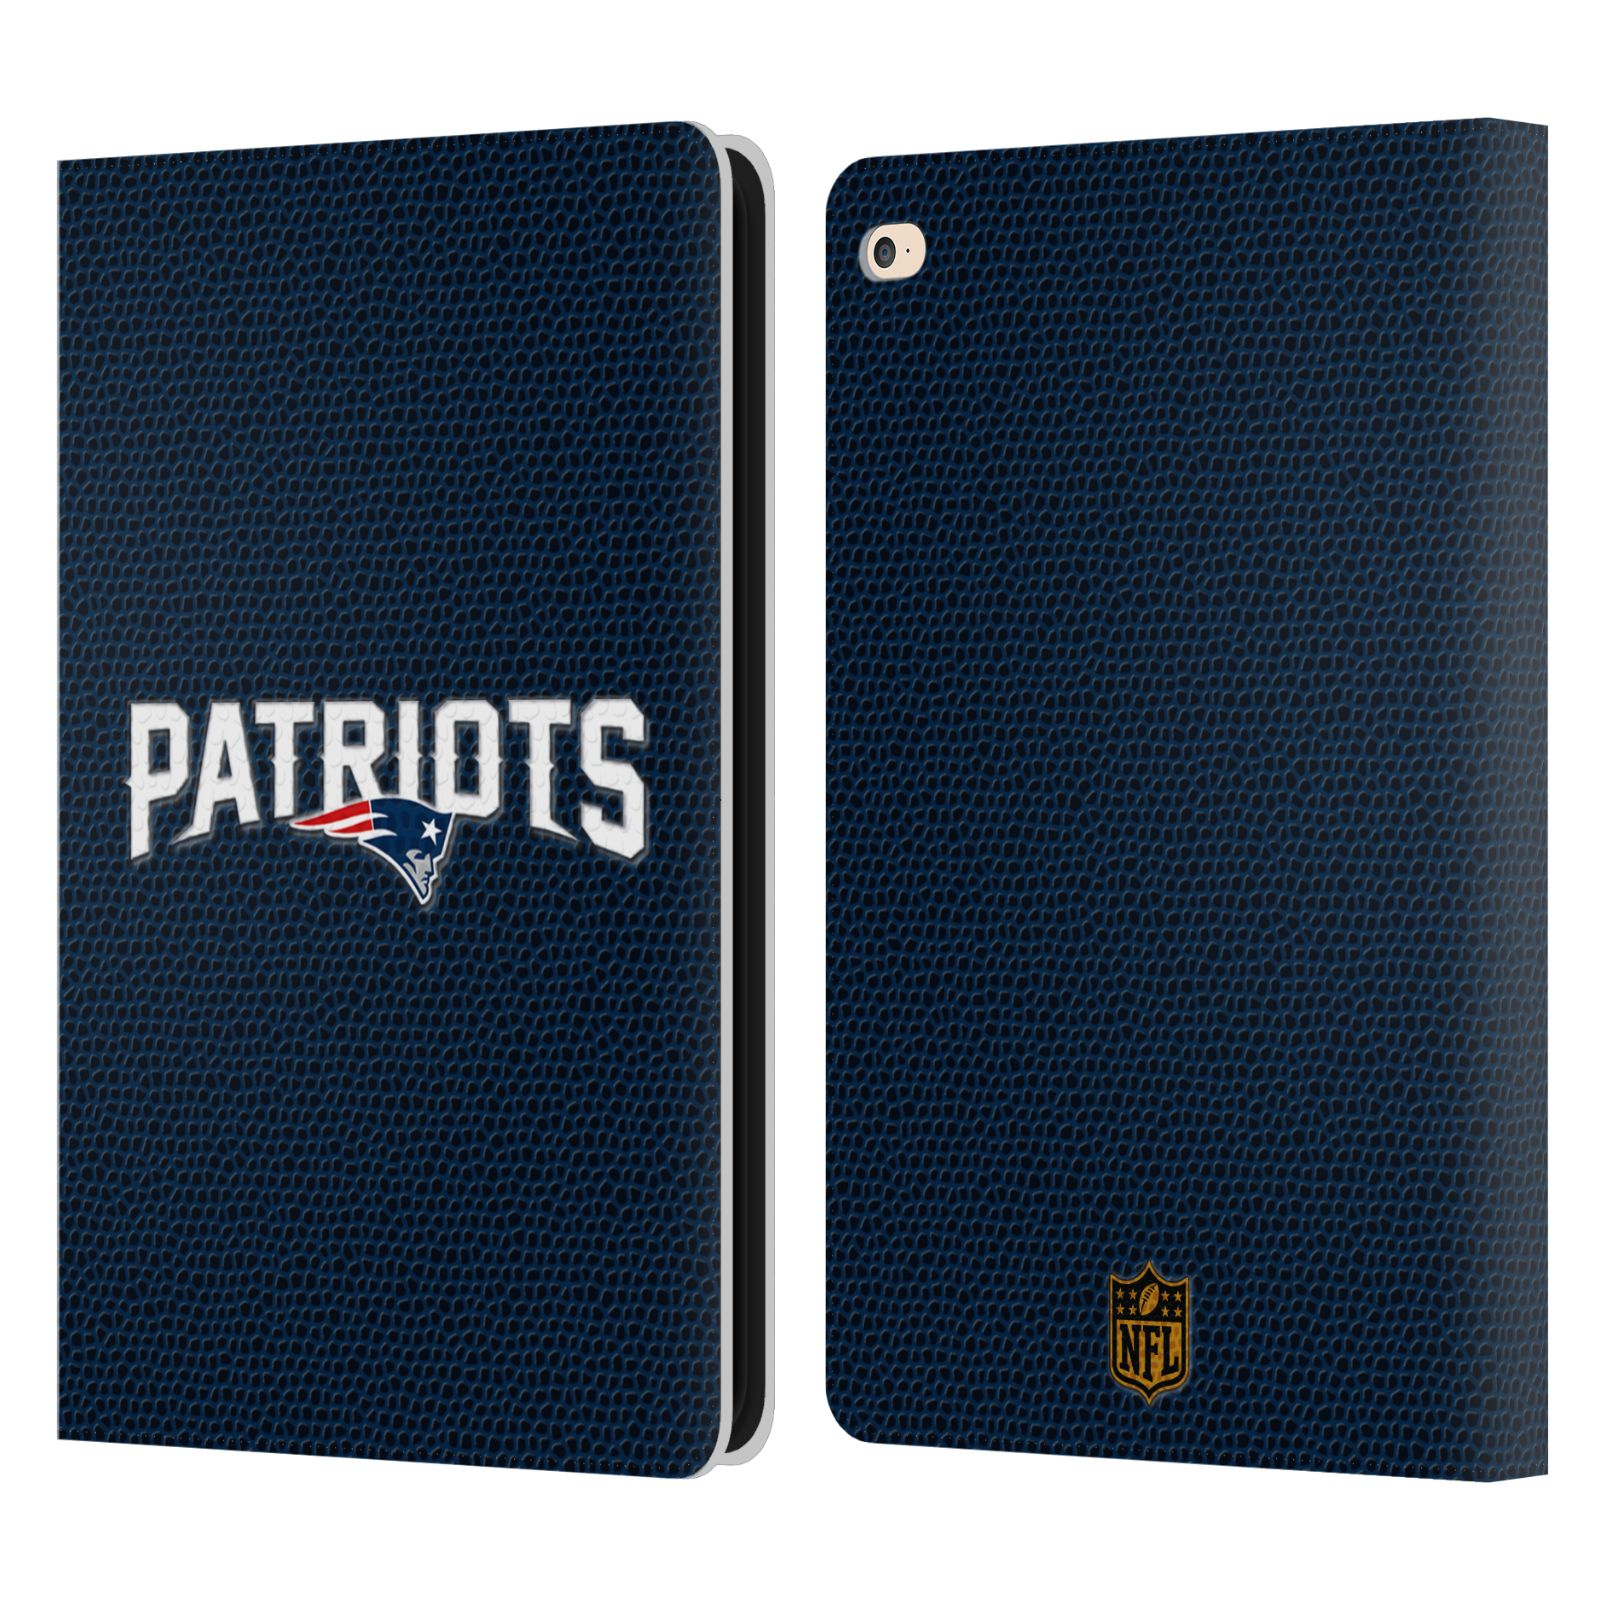 Official Nfl New England Patriots Logo Leather Book Wallet Case For Apple Ipad Ebay